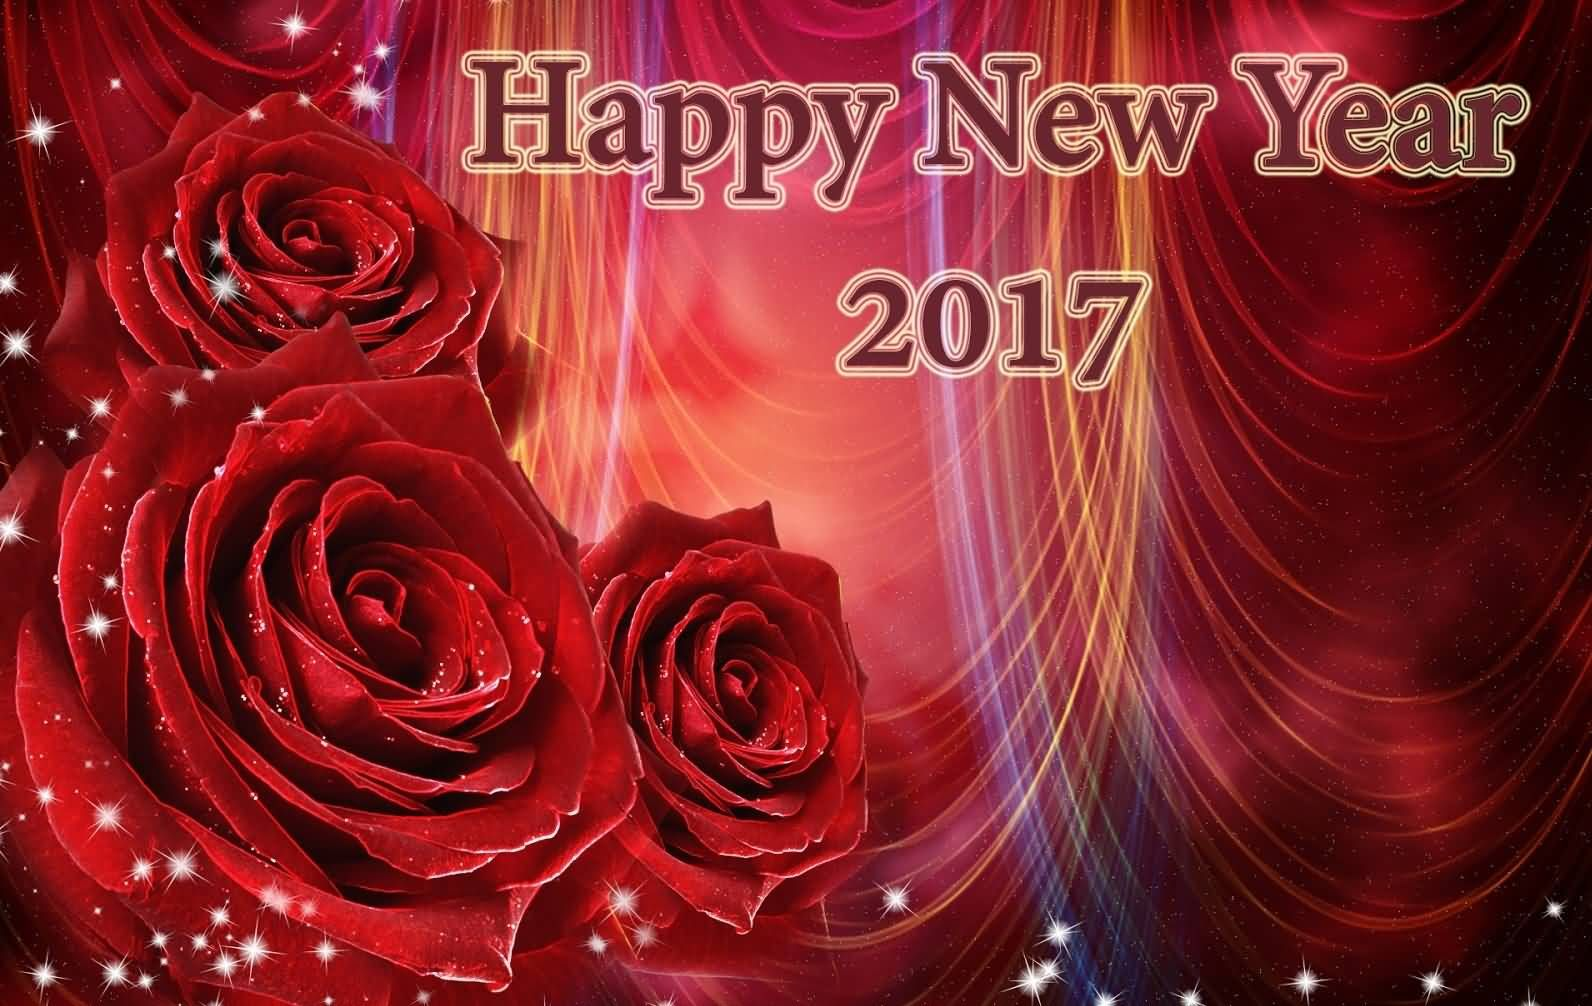 happy new year 2017 rose flowers picture